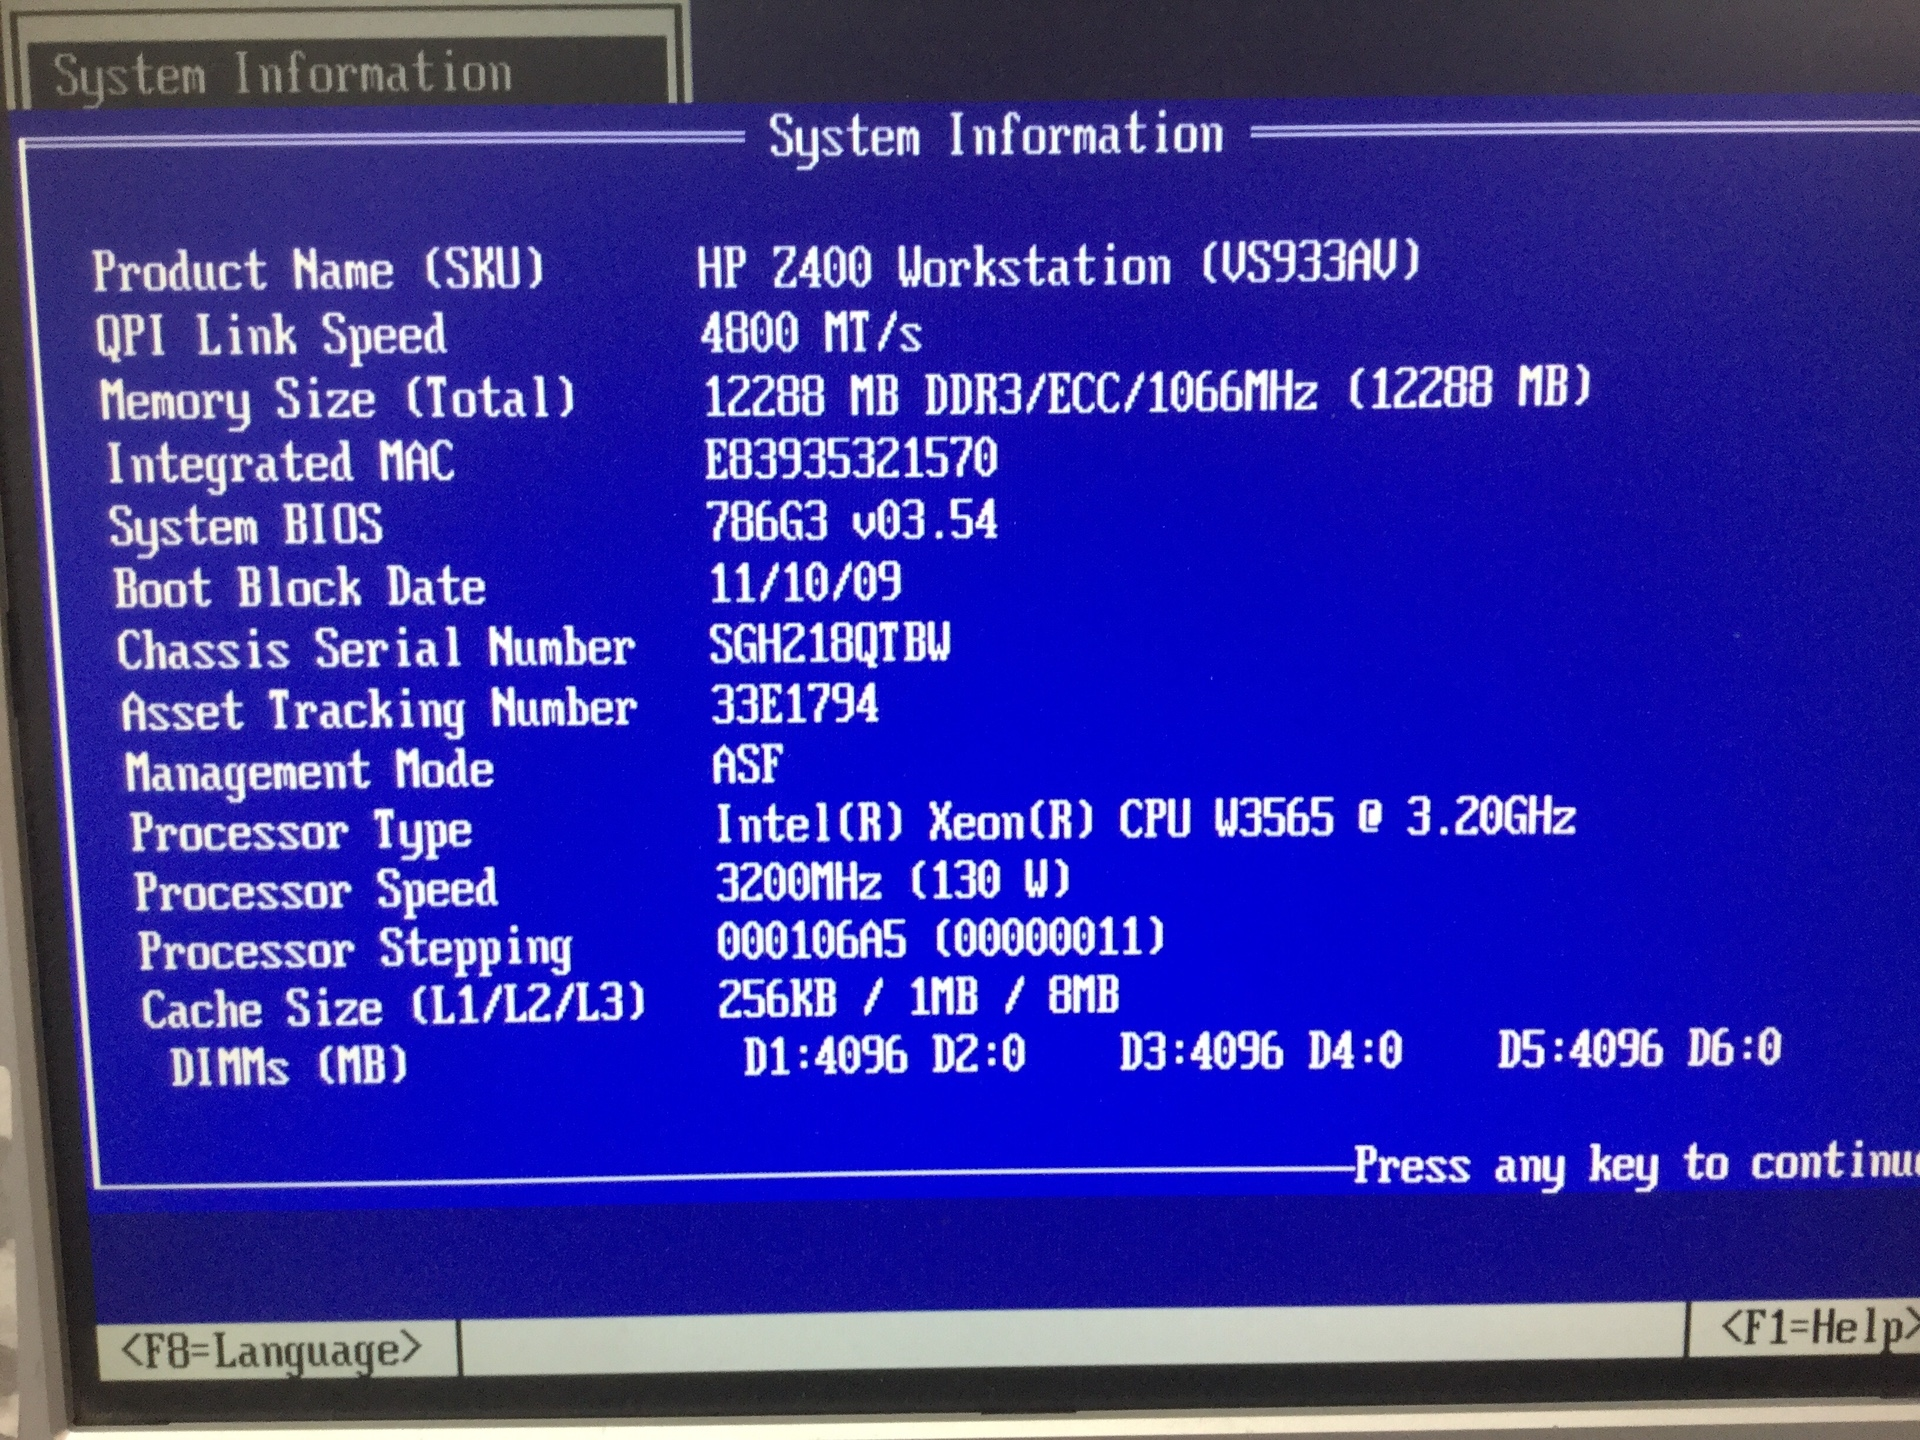 Server, HP Z400 Workstation, Appears to Function